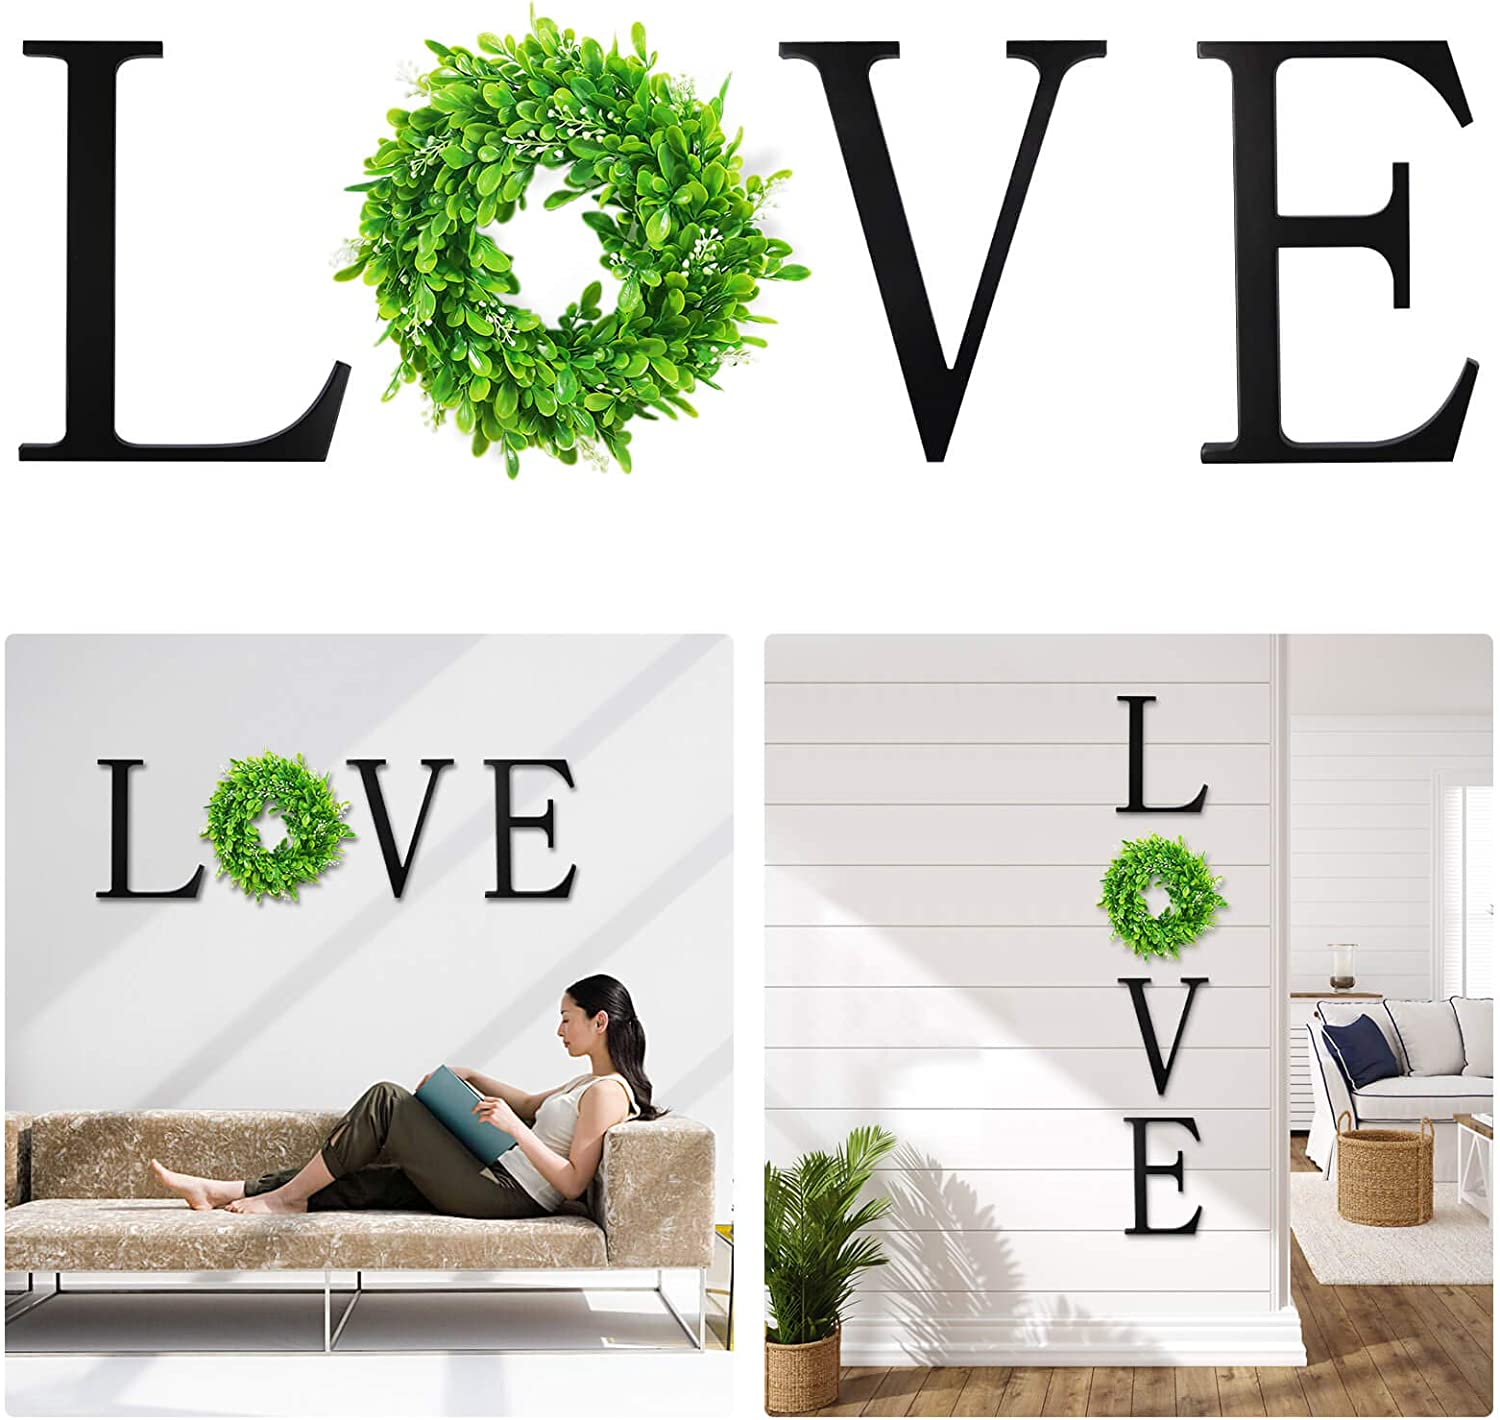 VIEFIN 12inch Wooden Love Letters for Wall Decor,Wall Hanging Love Sign with Green Wreath,Wooden Love Signs for Home Decor,Farmhouse Wall Decor for Living Room,Bedroom, Kitchen,Enterway,LOVE,Black